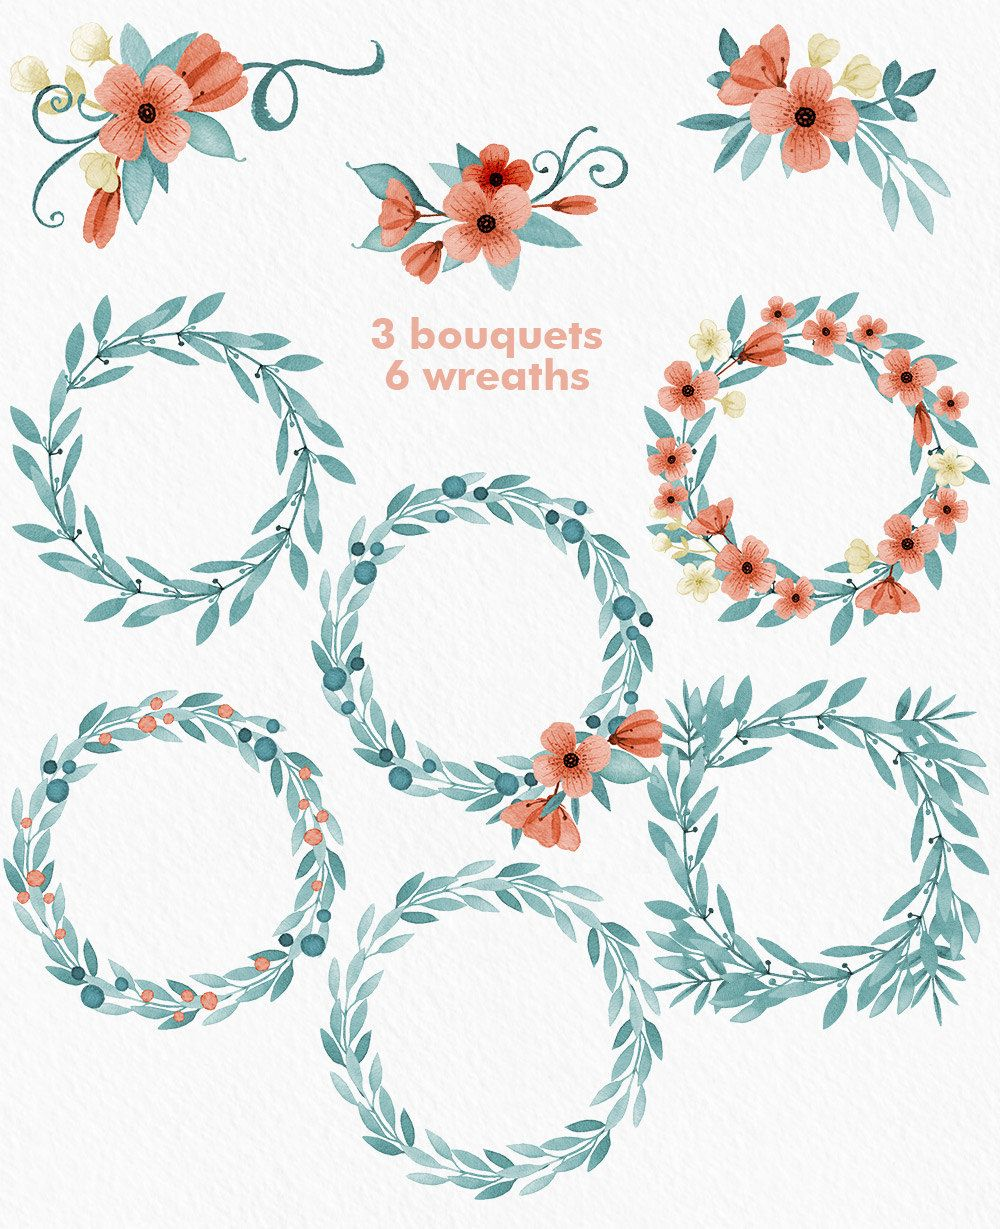 Wreath clipart teal. Flower watercolor wedding watercolornomads